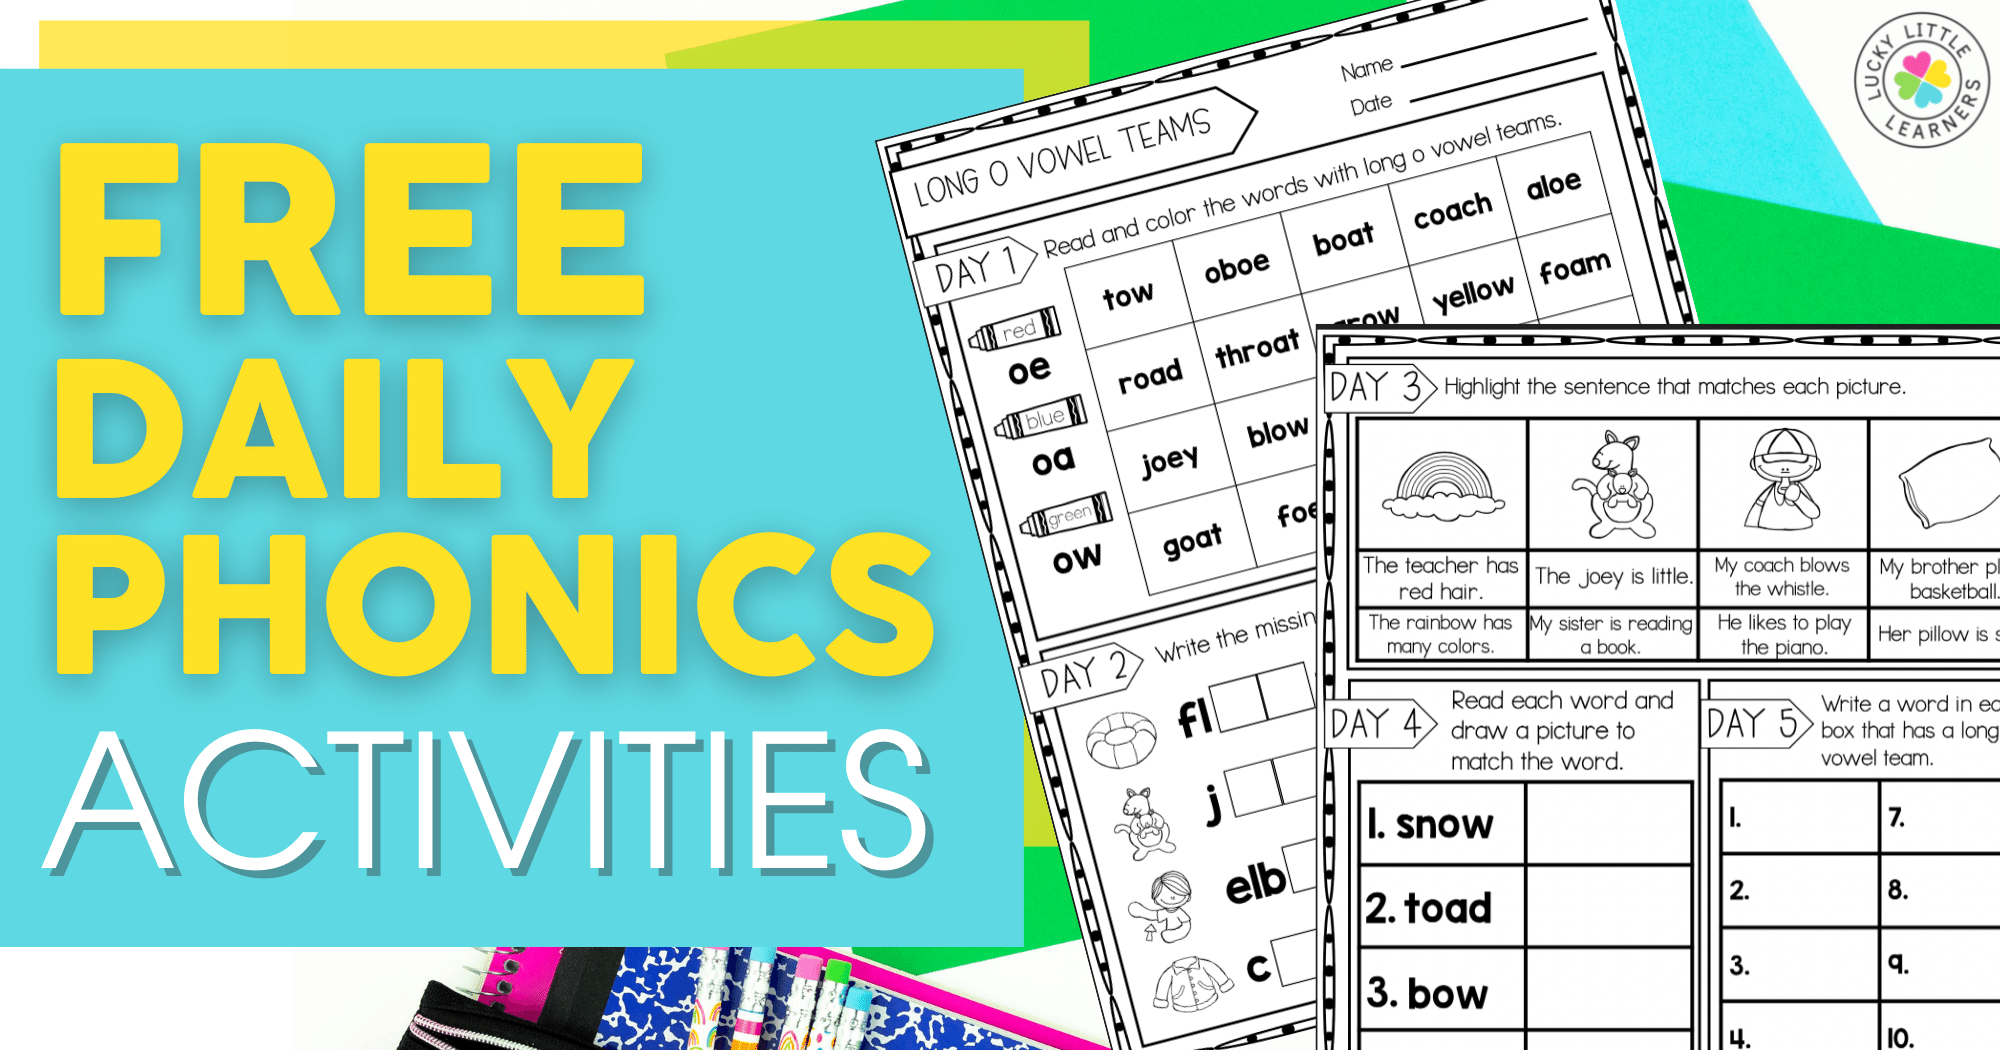 Free Daily Phonics Activities for 2nd Grade